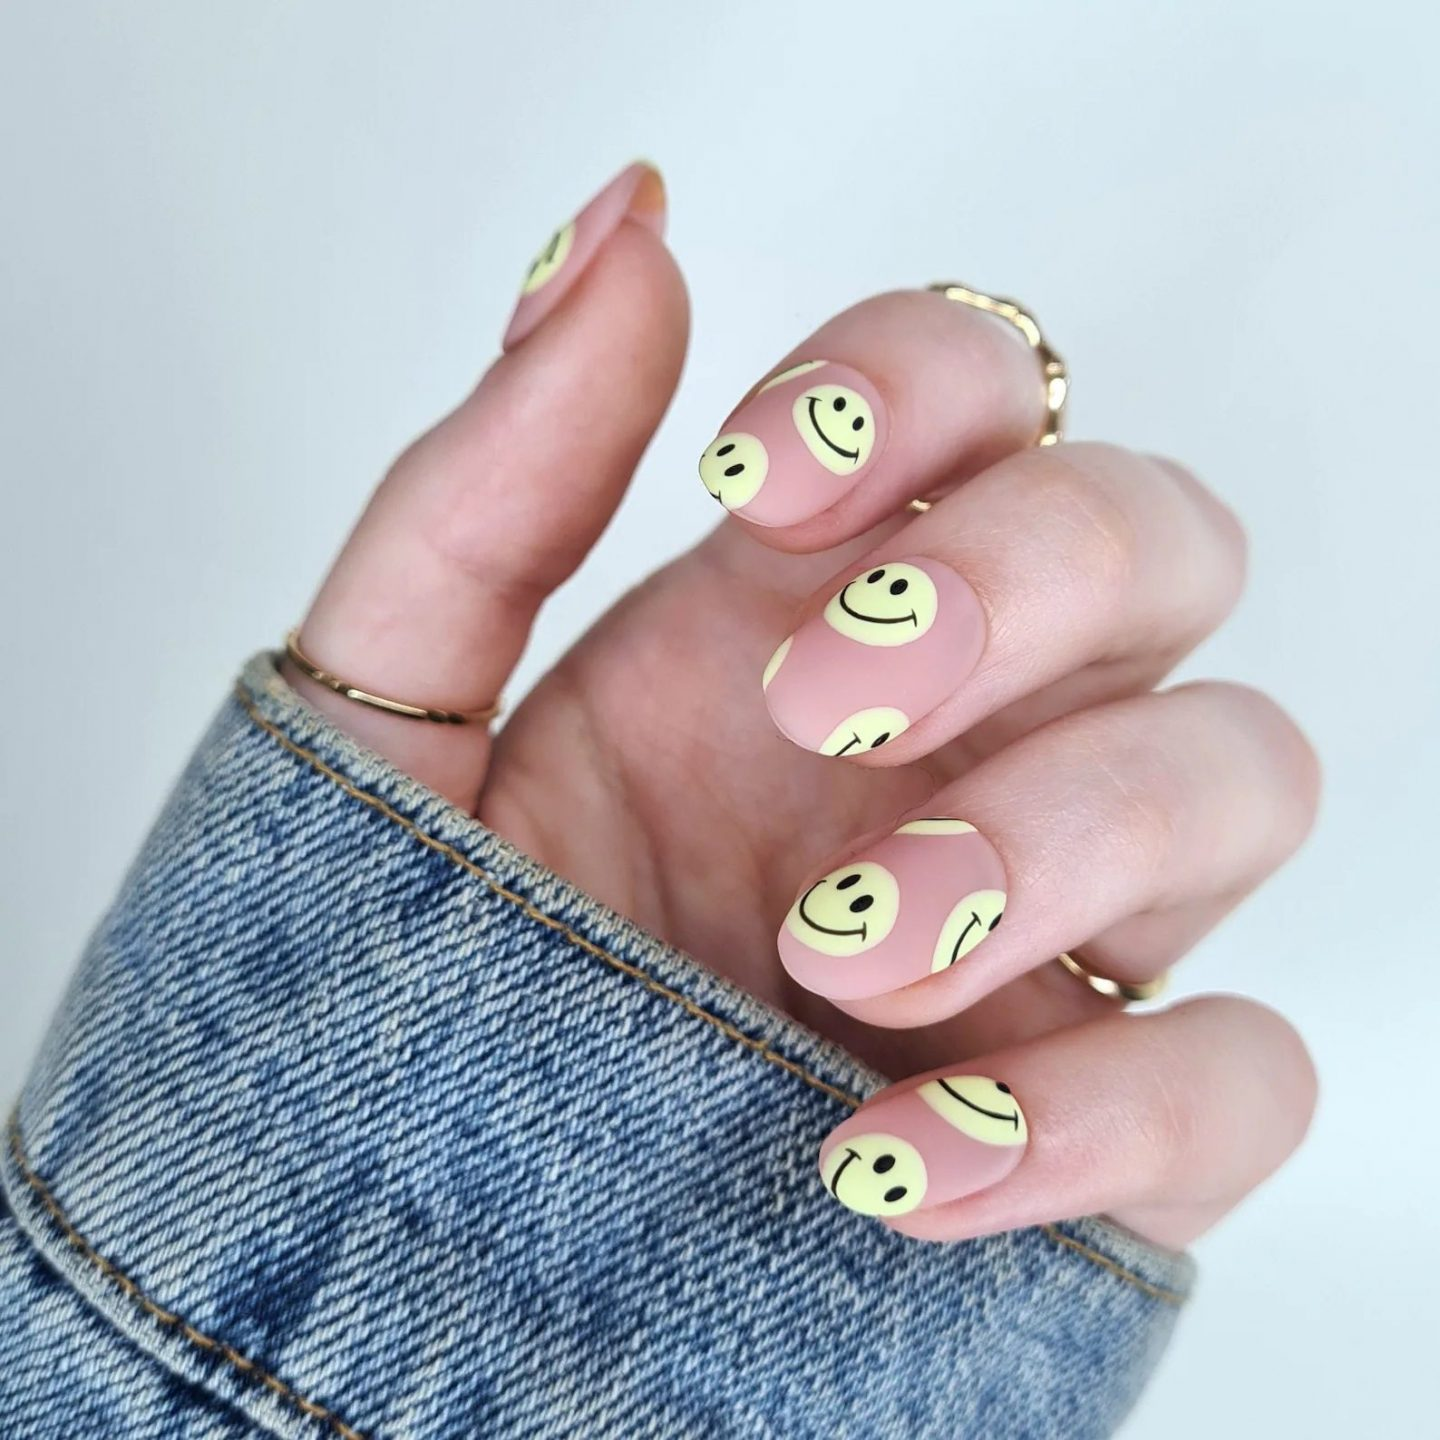 Nude nails with pastel yellow emojis